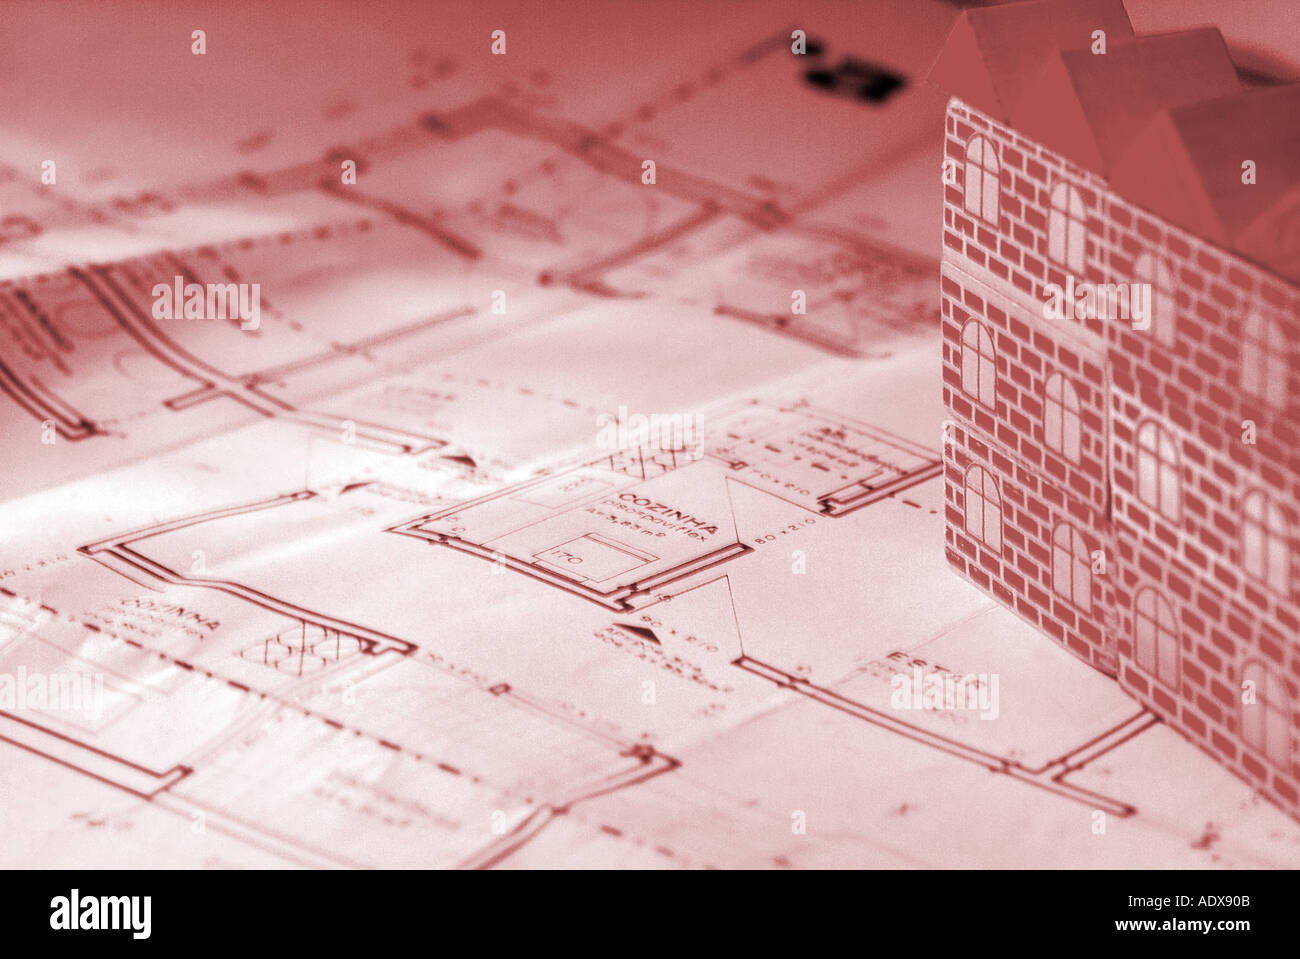 Architecture blueprint blocks toy model building roof plan scheme architecture blueprint blocks toy model building roof plan scheme diagram project concept conceptual background duotone red redd malvernweather Image collections